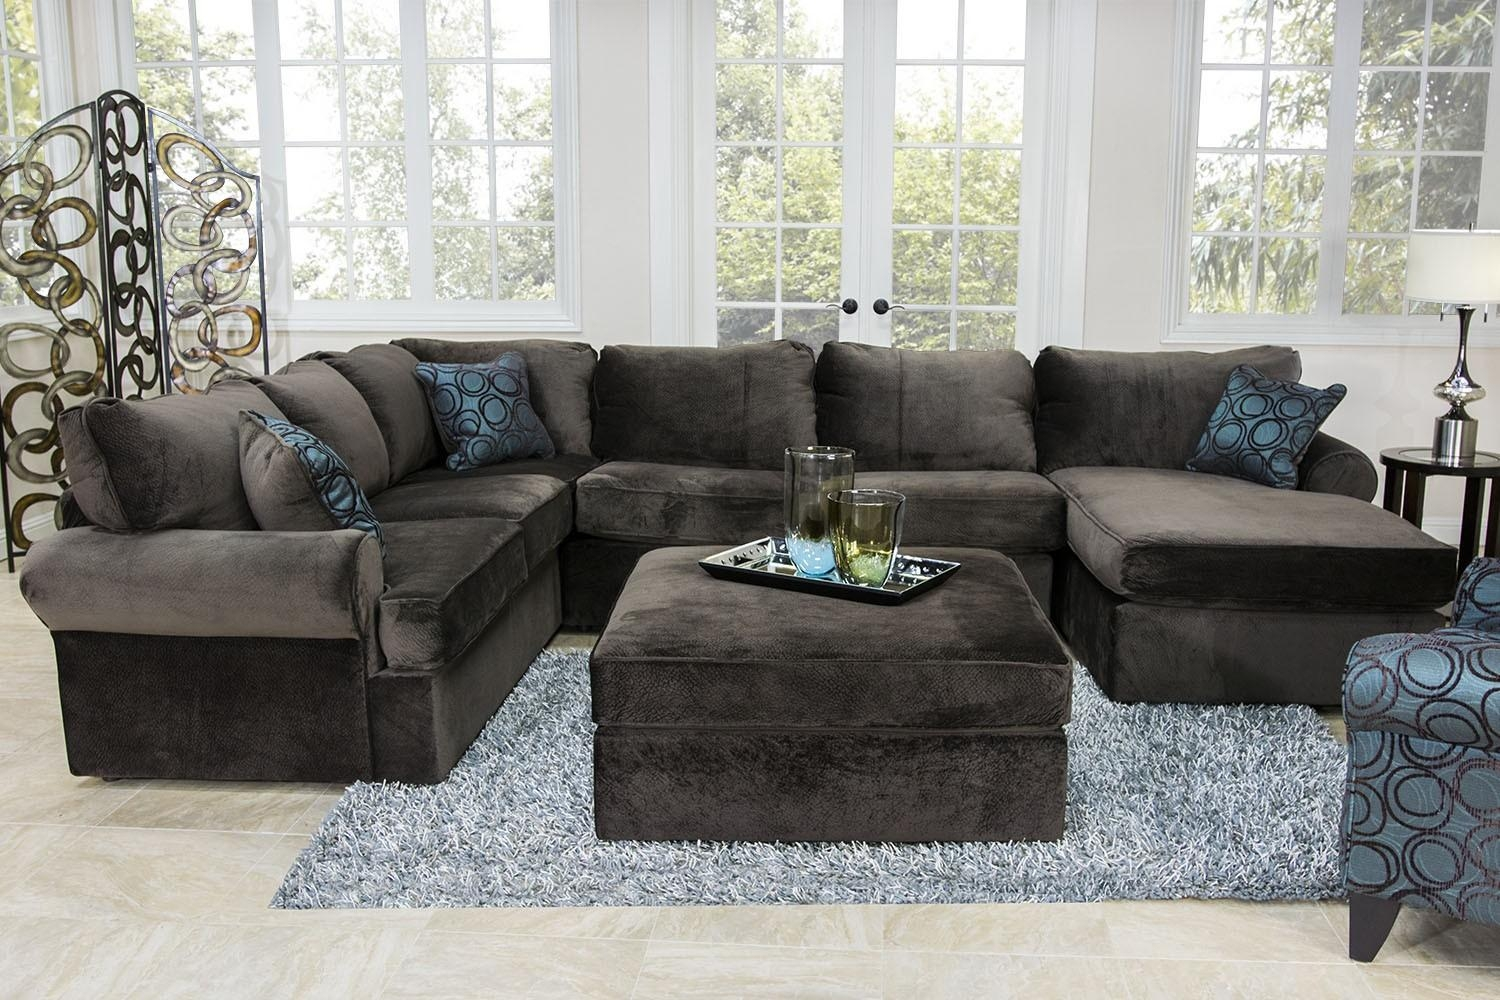 The Napa Chocolate Sectional Living Room Collection | Mor Regarding Media Room Sectional (Image 18 of 20)